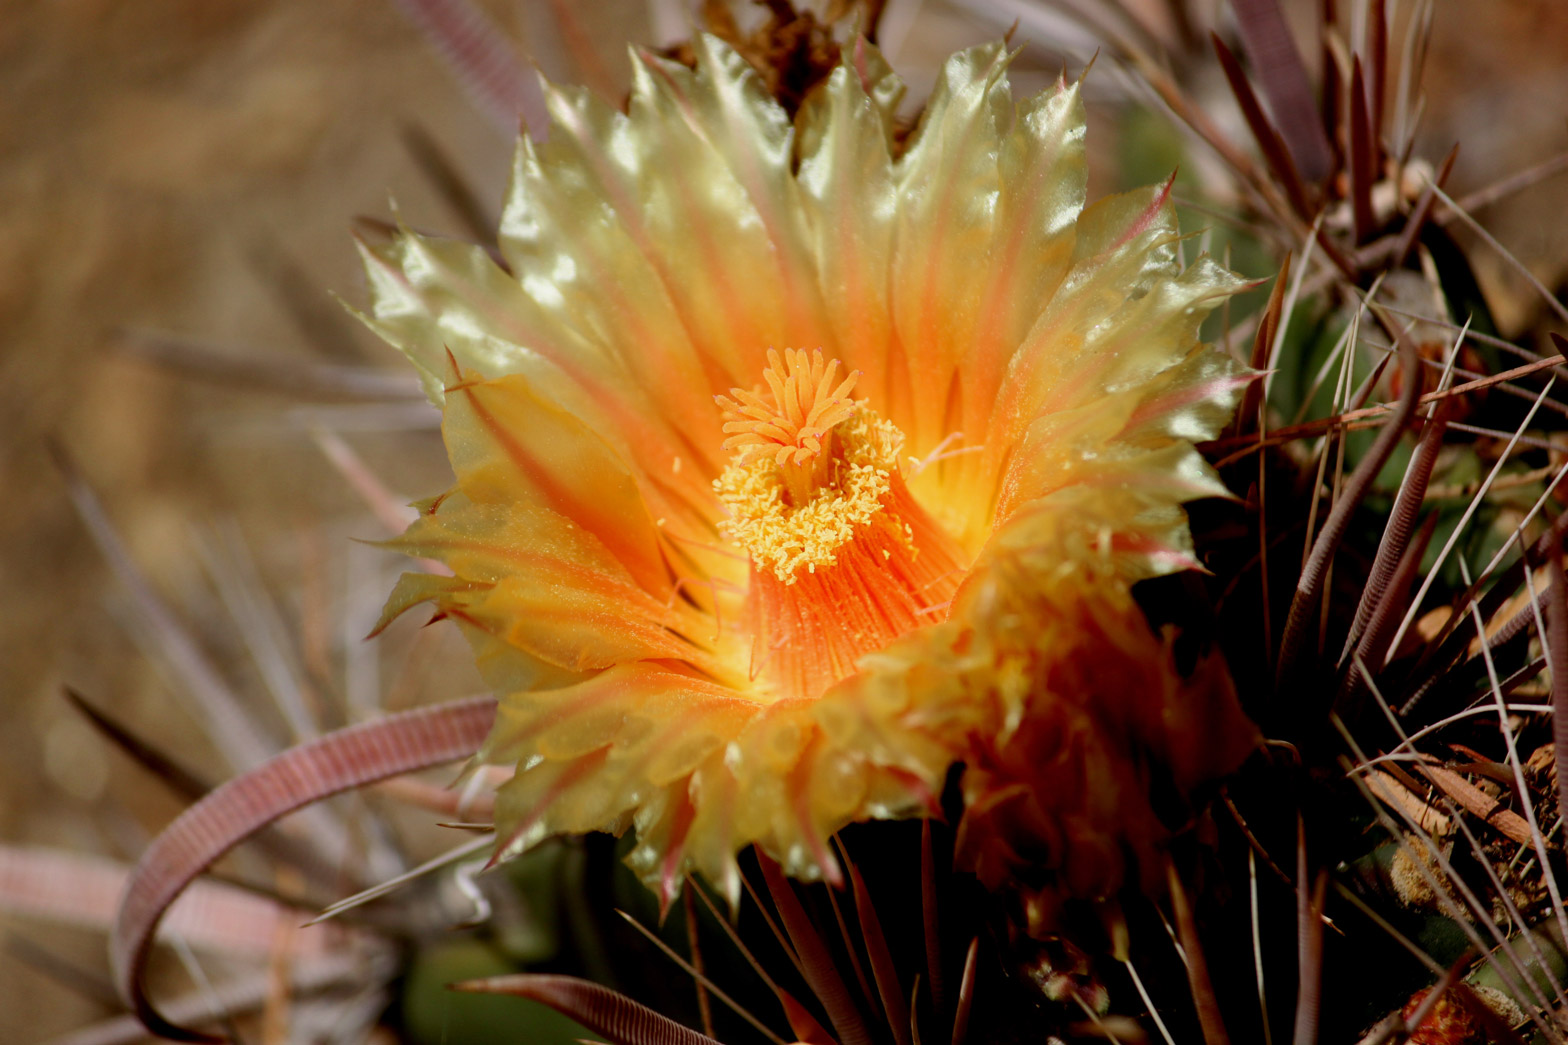 A close-up of a yellow-orange Fish Hook barrel cactus flower.